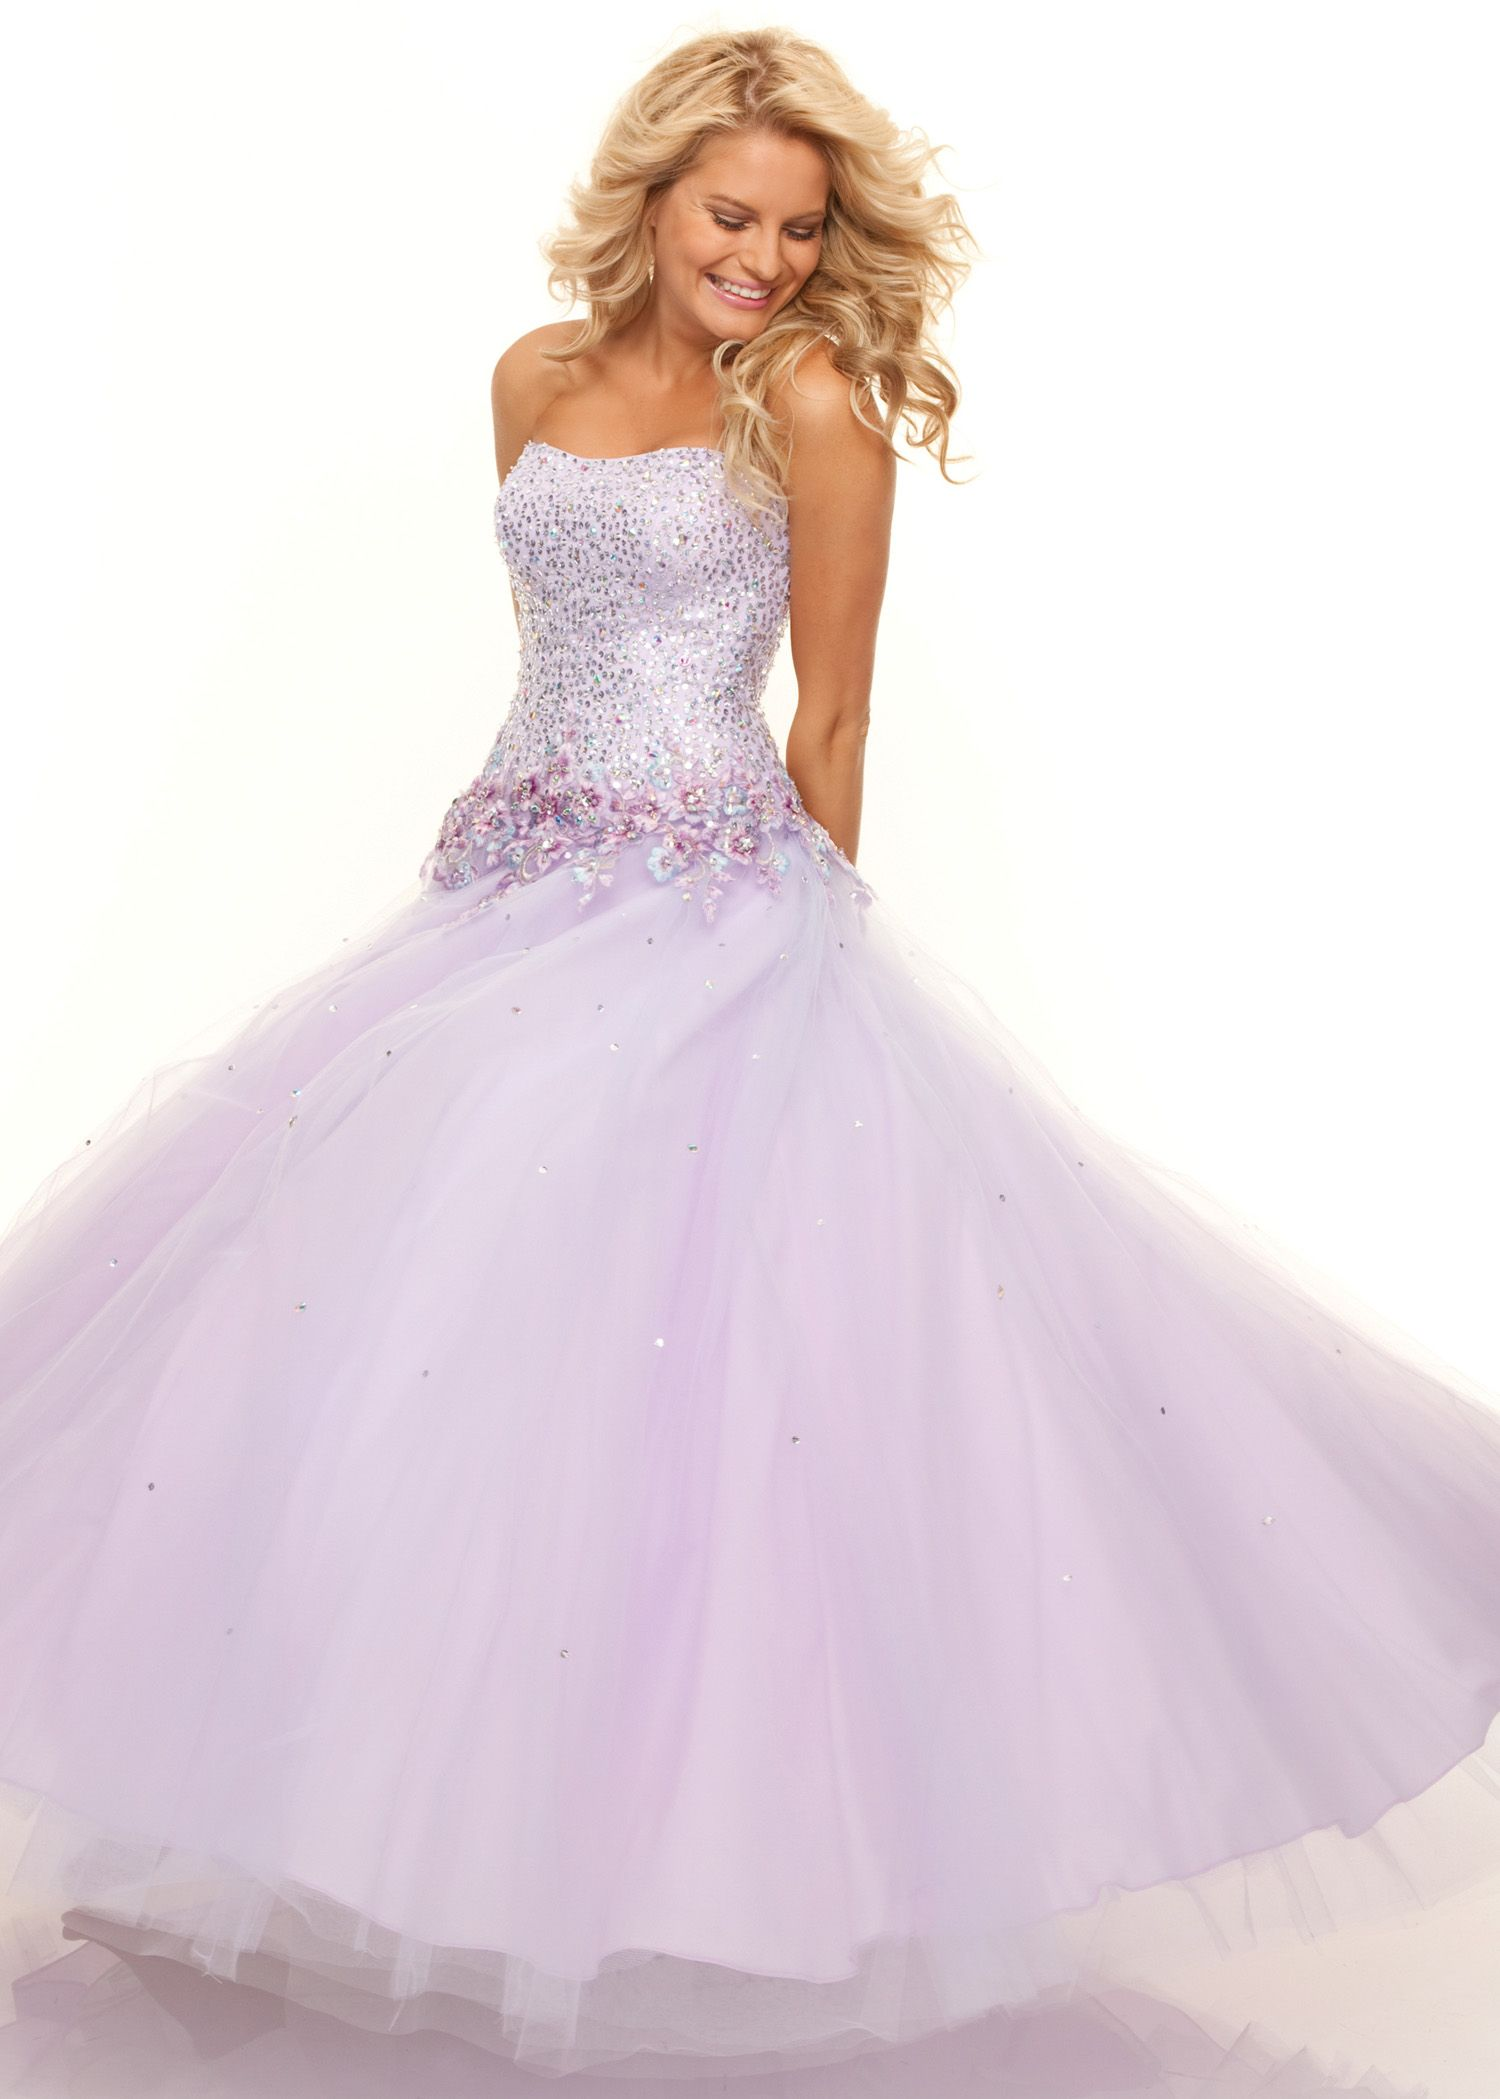 Shop Now Paparazzi by Mori Lee 93093 strapless purple prom